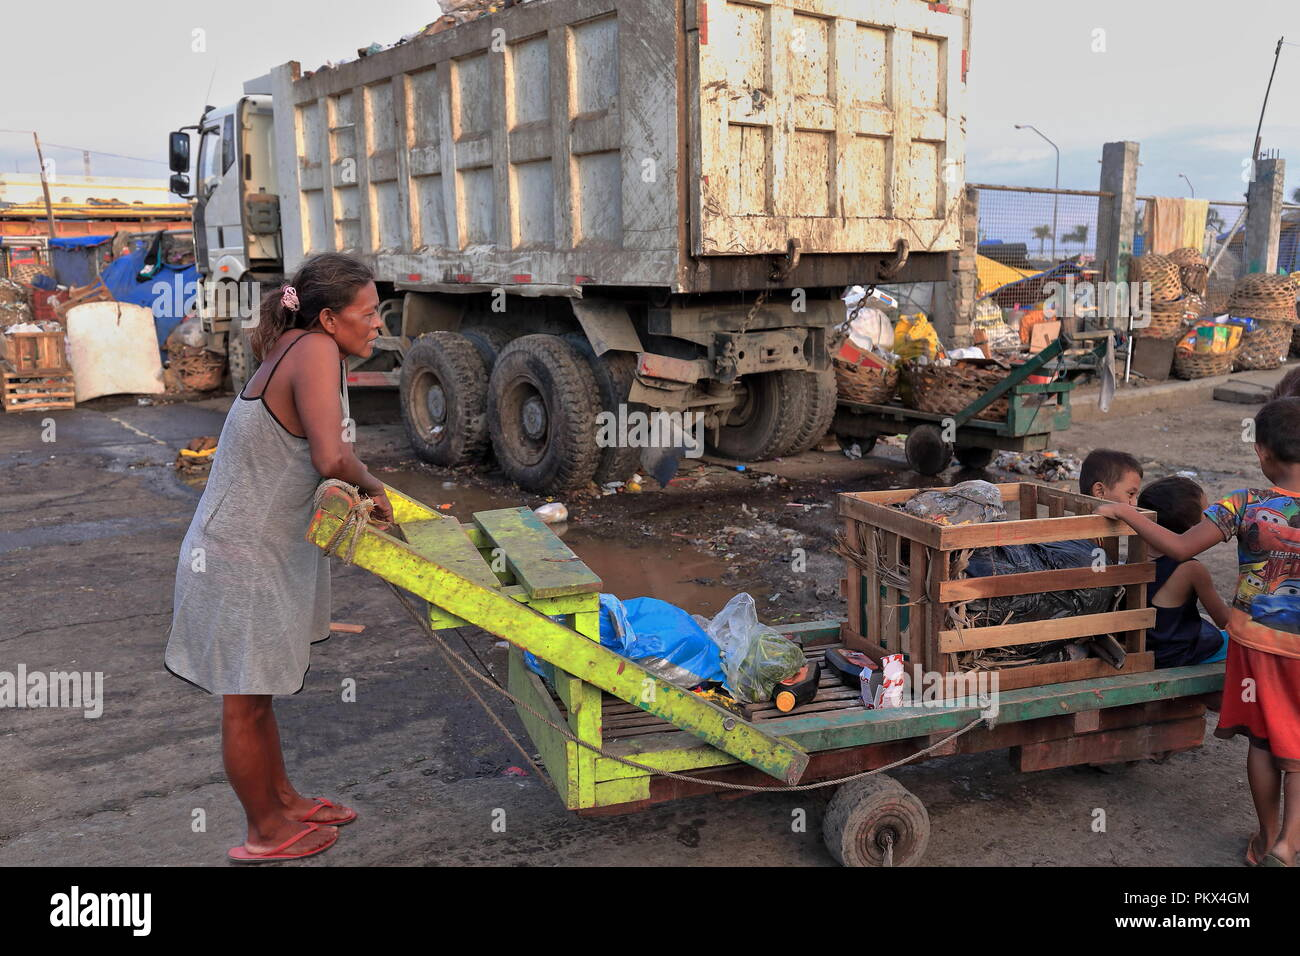 29e45f97d973 Wooden Truck Bed Stock Photos & Wooden Truck Bed Stock Images - Alamy